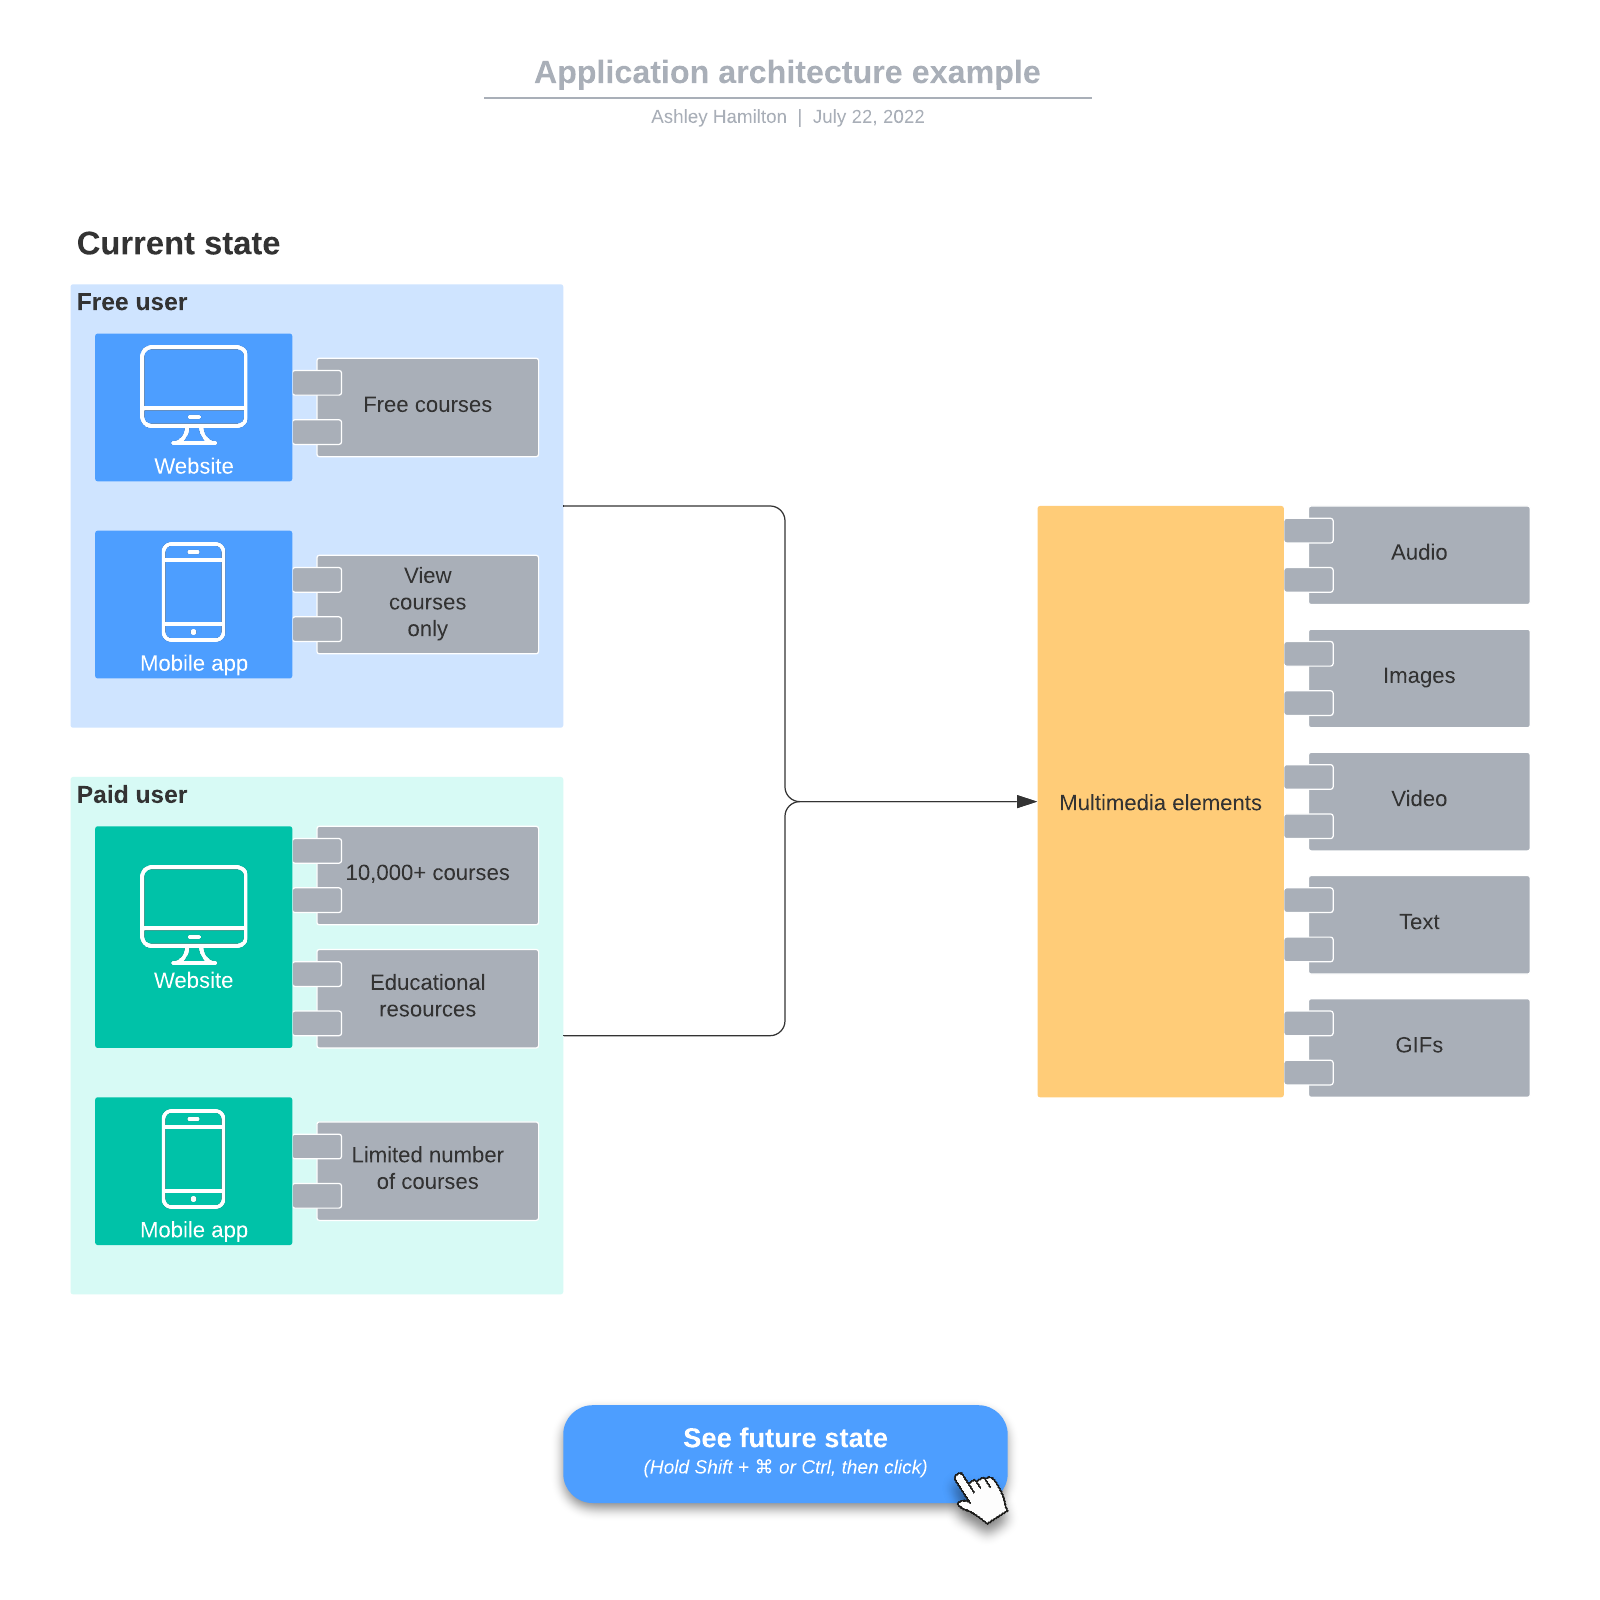 Application architecture example